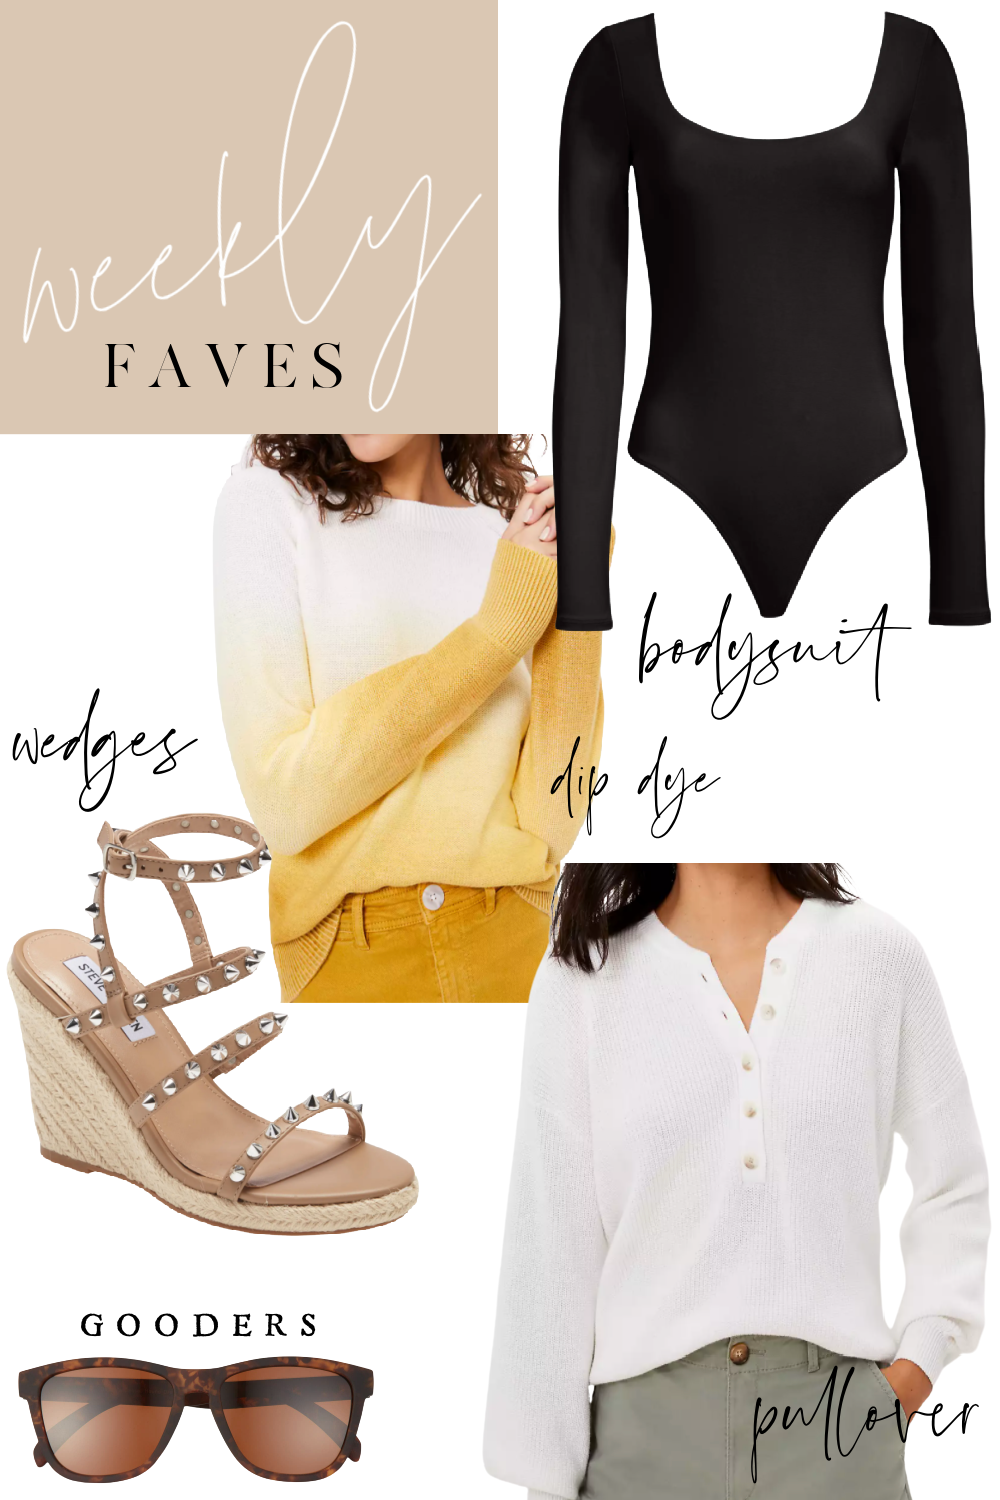 Weekly Fashion Faves 2.23.21